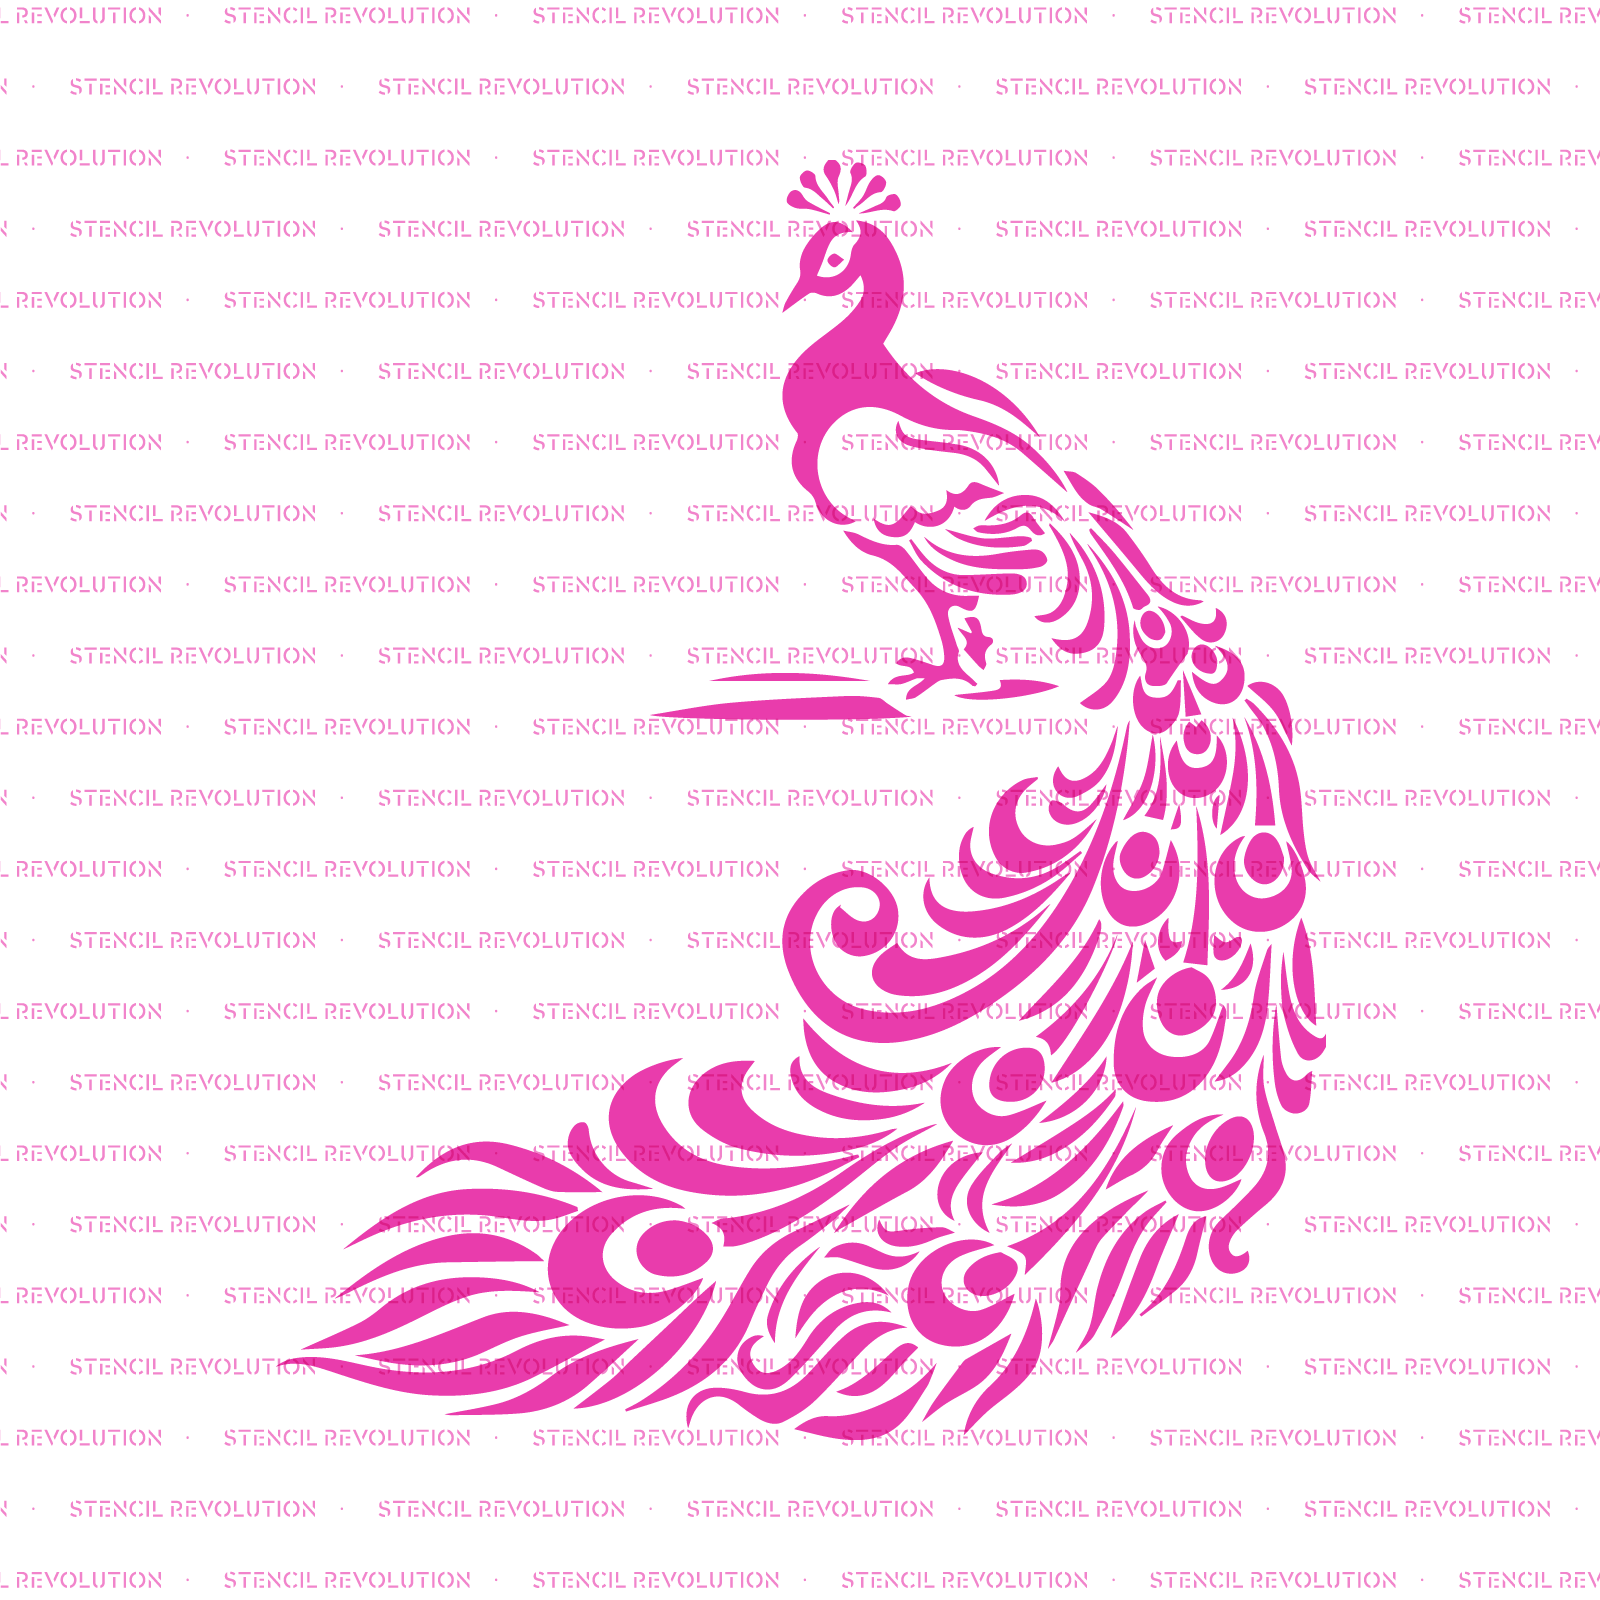 Peacock Stencil - Reusable Stencil of Peacock Feathers in Small & Large Sizes